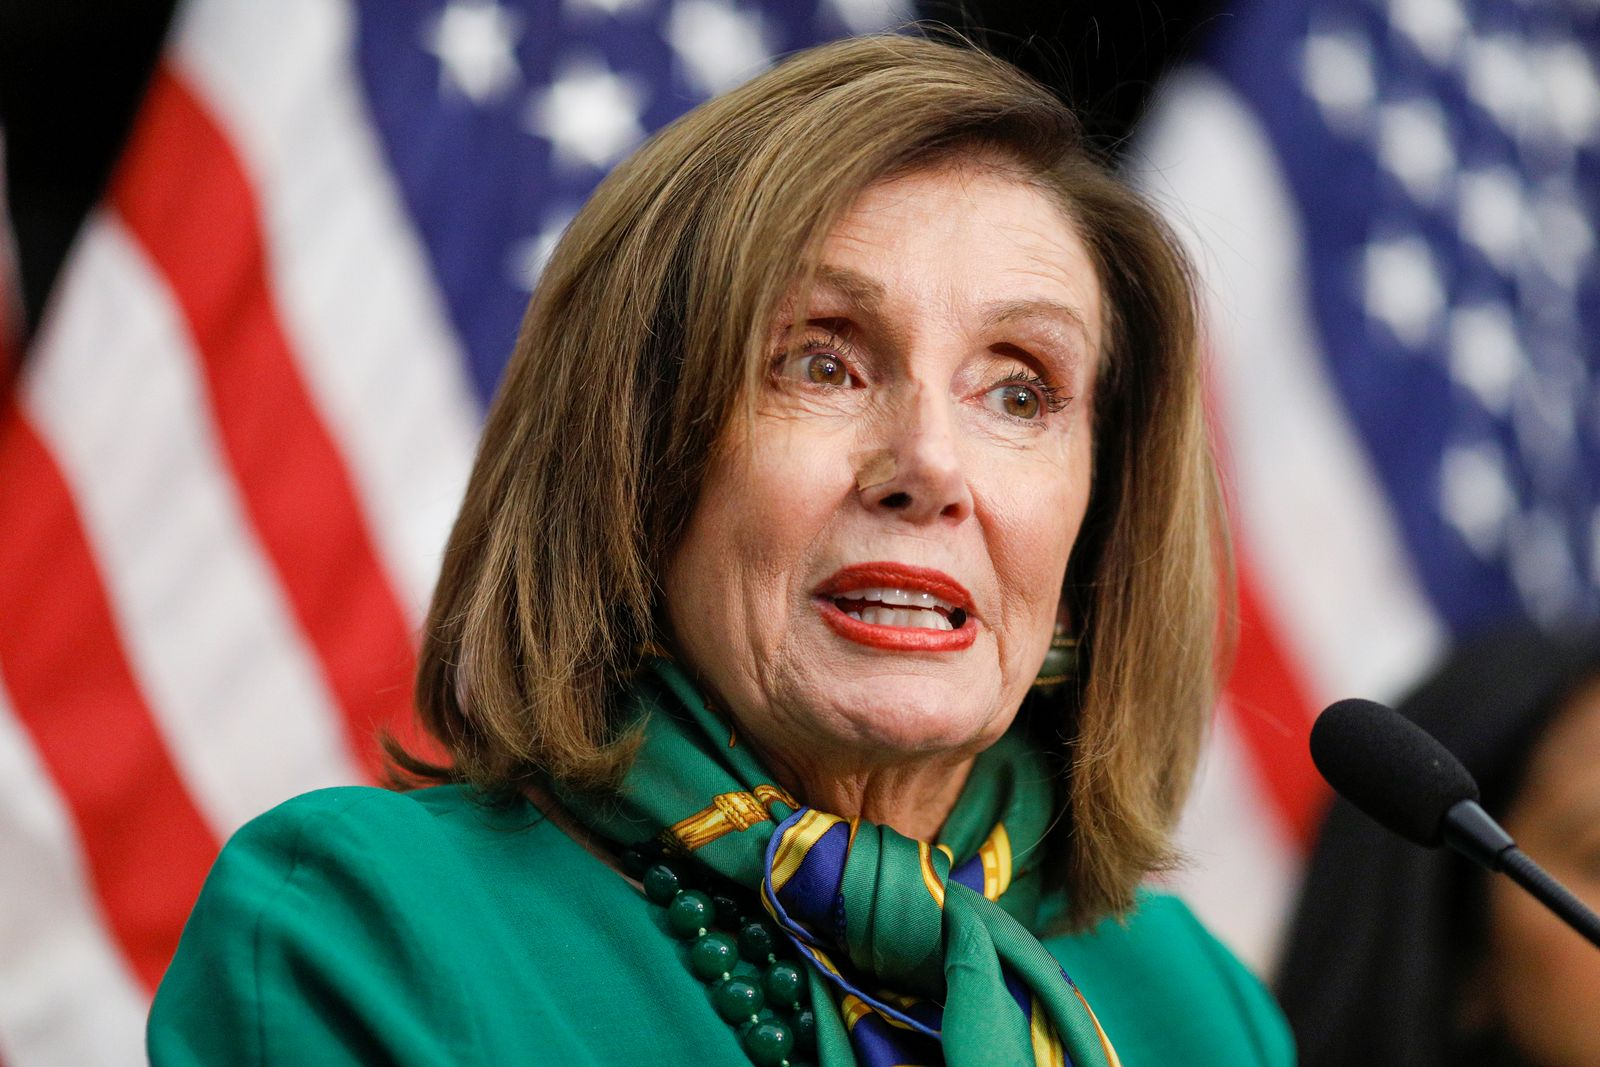 House Speaker Nancy Pelosi addresses a news conference on Capitol Hill in Washioington